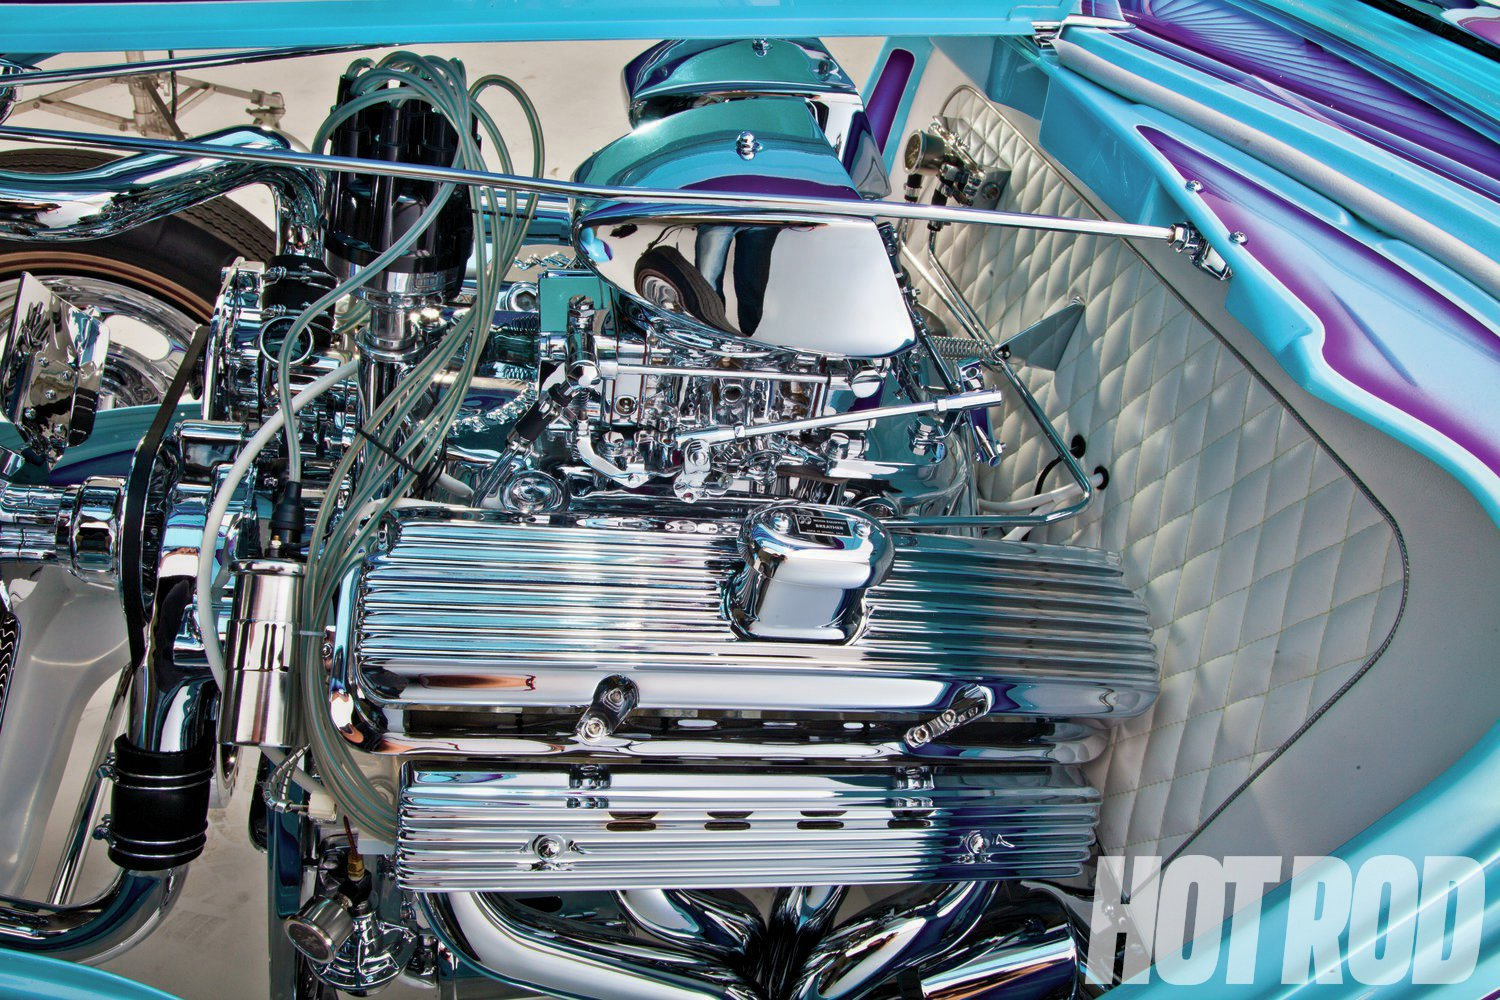 The only thing not chromed on the engine is the block itself. Besides the cool vintage Moon valve covers, matching spark-plug wire covers (a Buick nail head aftermarket item) help to visually clean up the Ford wedge heads. The Decca clear plug wires are a show car item from the late '60s, and are fairly hard to find.